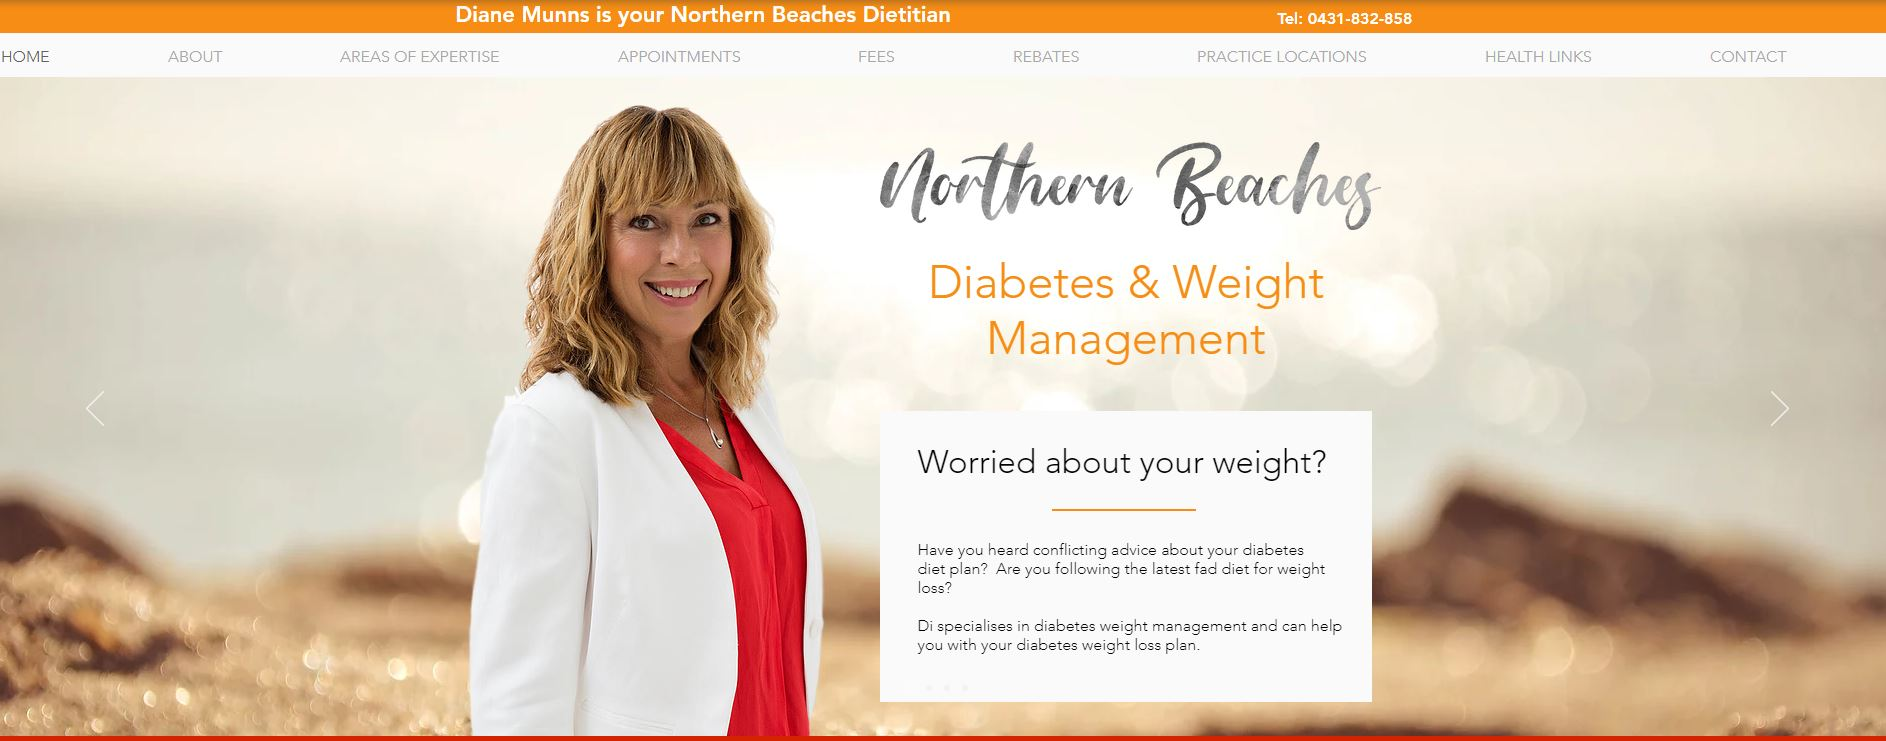 Professional Dietitian